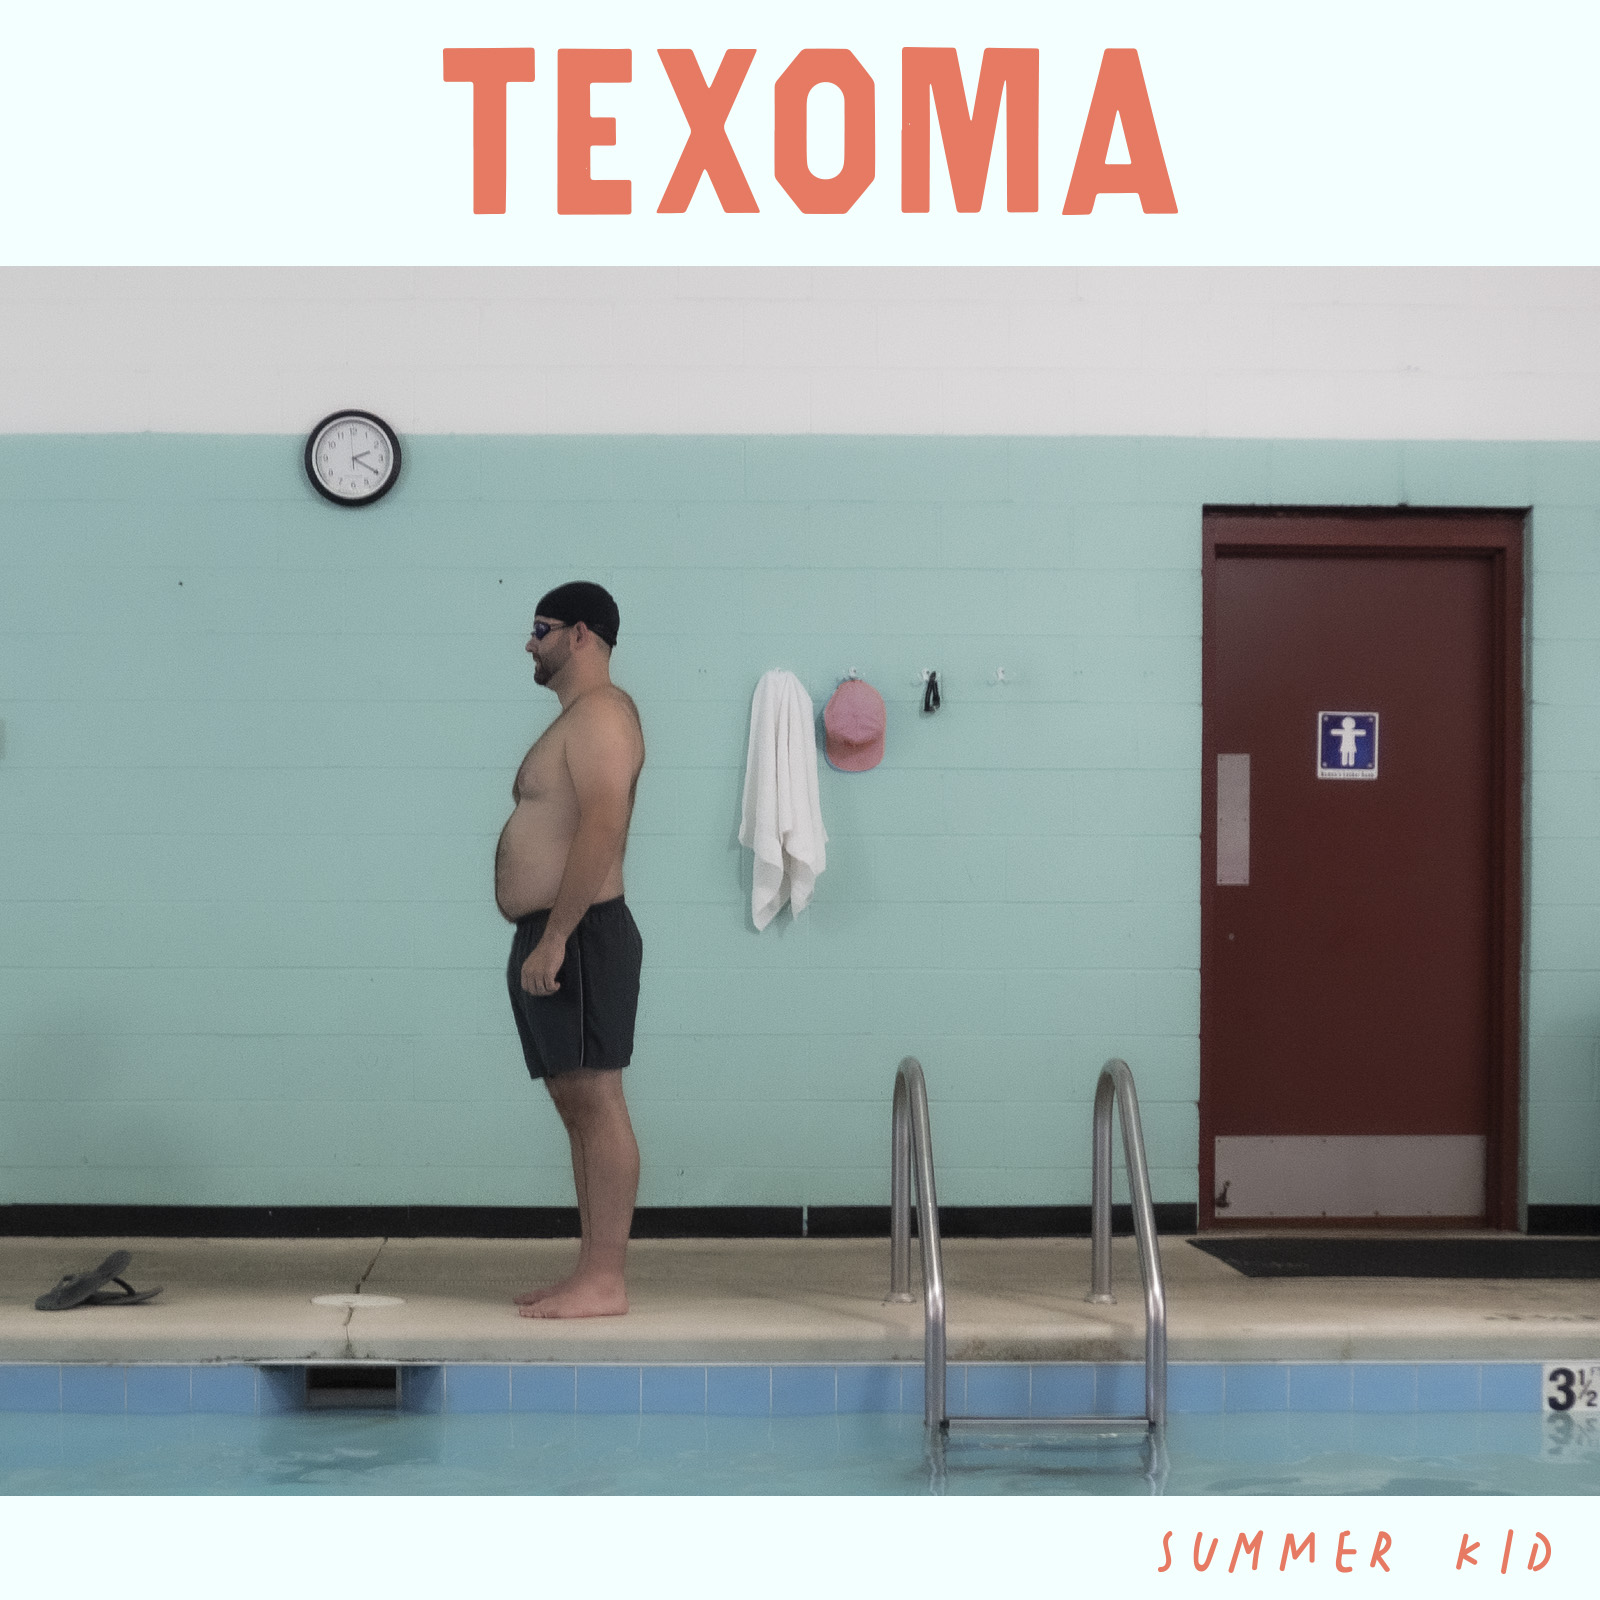 "Welcome - to the Texoma ""Summer Kid"" album preview. We ask you do not share this site with others until after the release date of August 30st.Below you will find a preview of our upcoming release, with pics from previous shows. We're also working on a few videos at the moment as well as details of the album release show.For any questions please shoot us an email at texomamusic@gmail.com or call/text nine one 9 two 6 oh, eighty seven 10."